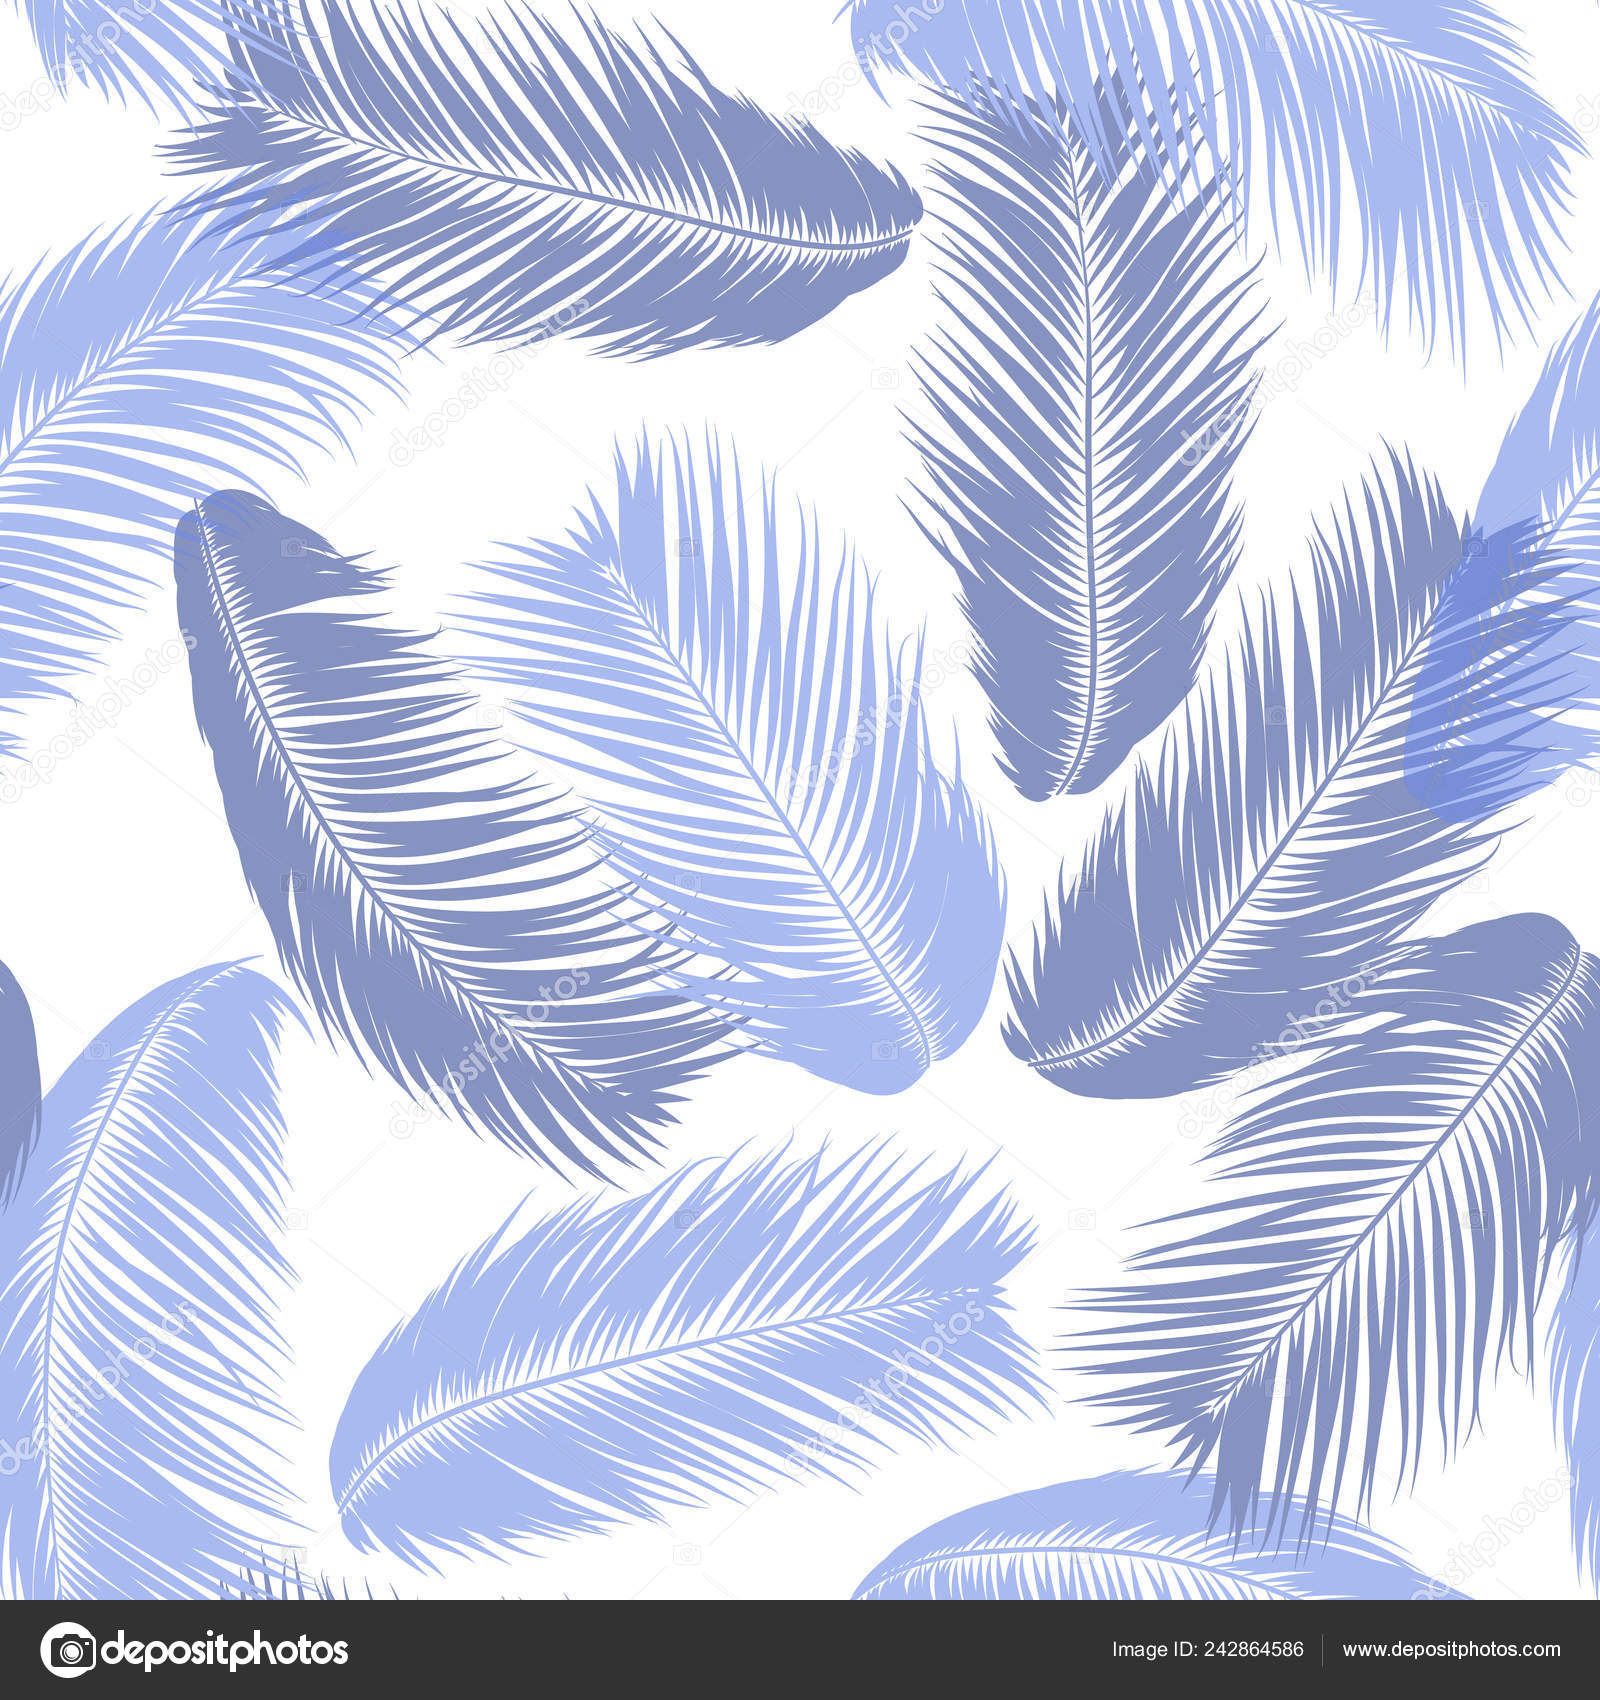 Blue Tropical Palm Tree Leaves Vector Seamless Pattern Simple Silhouette Coconut Leaf Sketch Summer Floral Background Wallpaper Of Exotic Palm Tree Leaves For Textile Fabric Cloth Design Print Vector Image By C